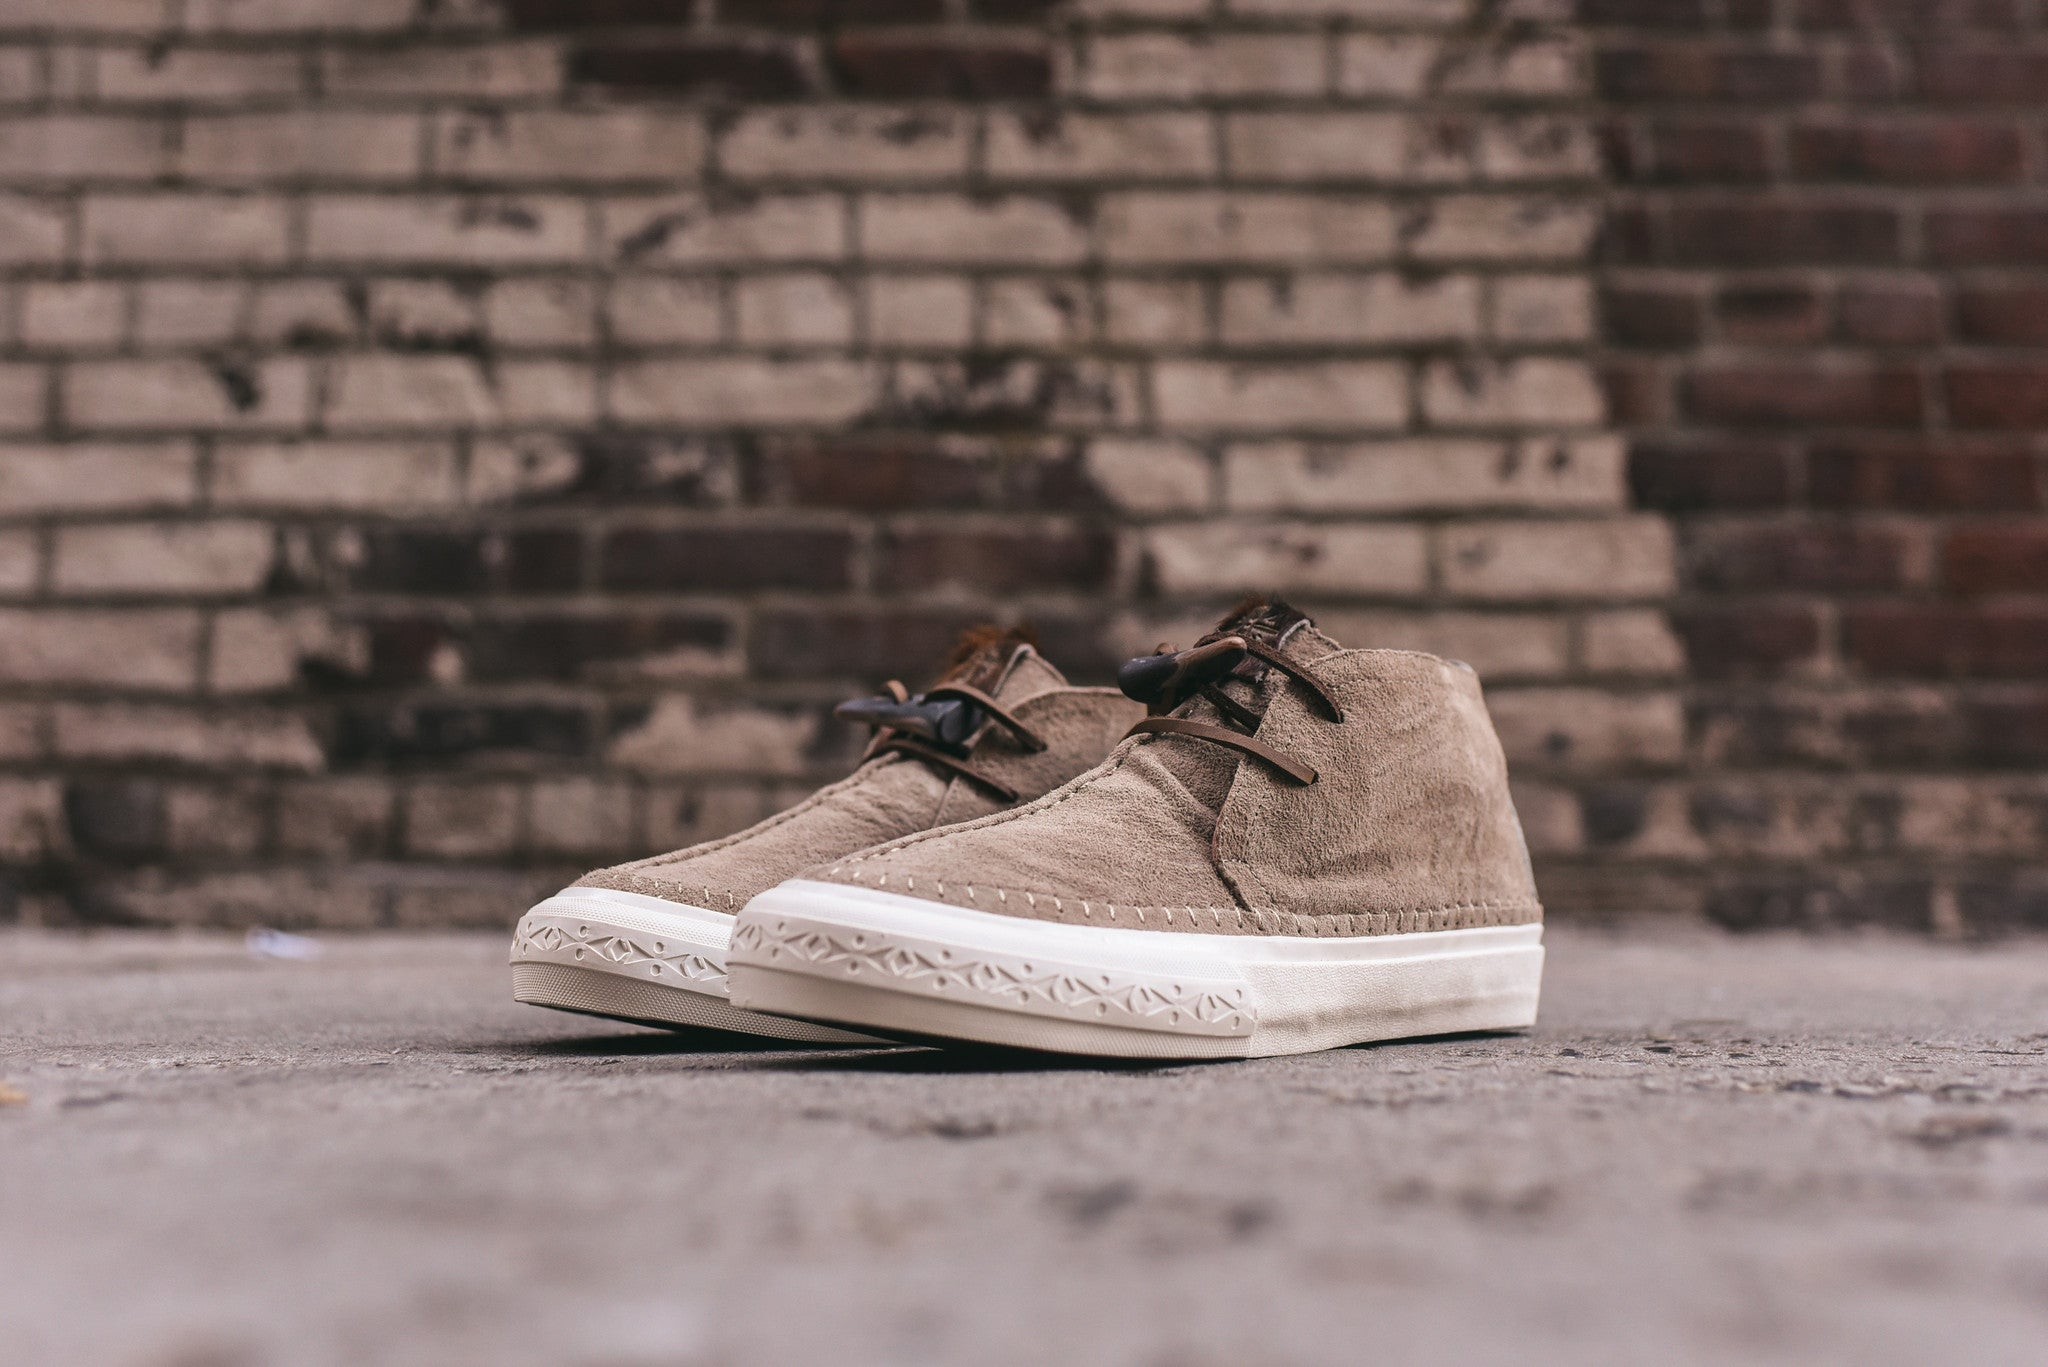 Vans Vault x Taka Hayashi Chukka Nomad LX - Indian Trails